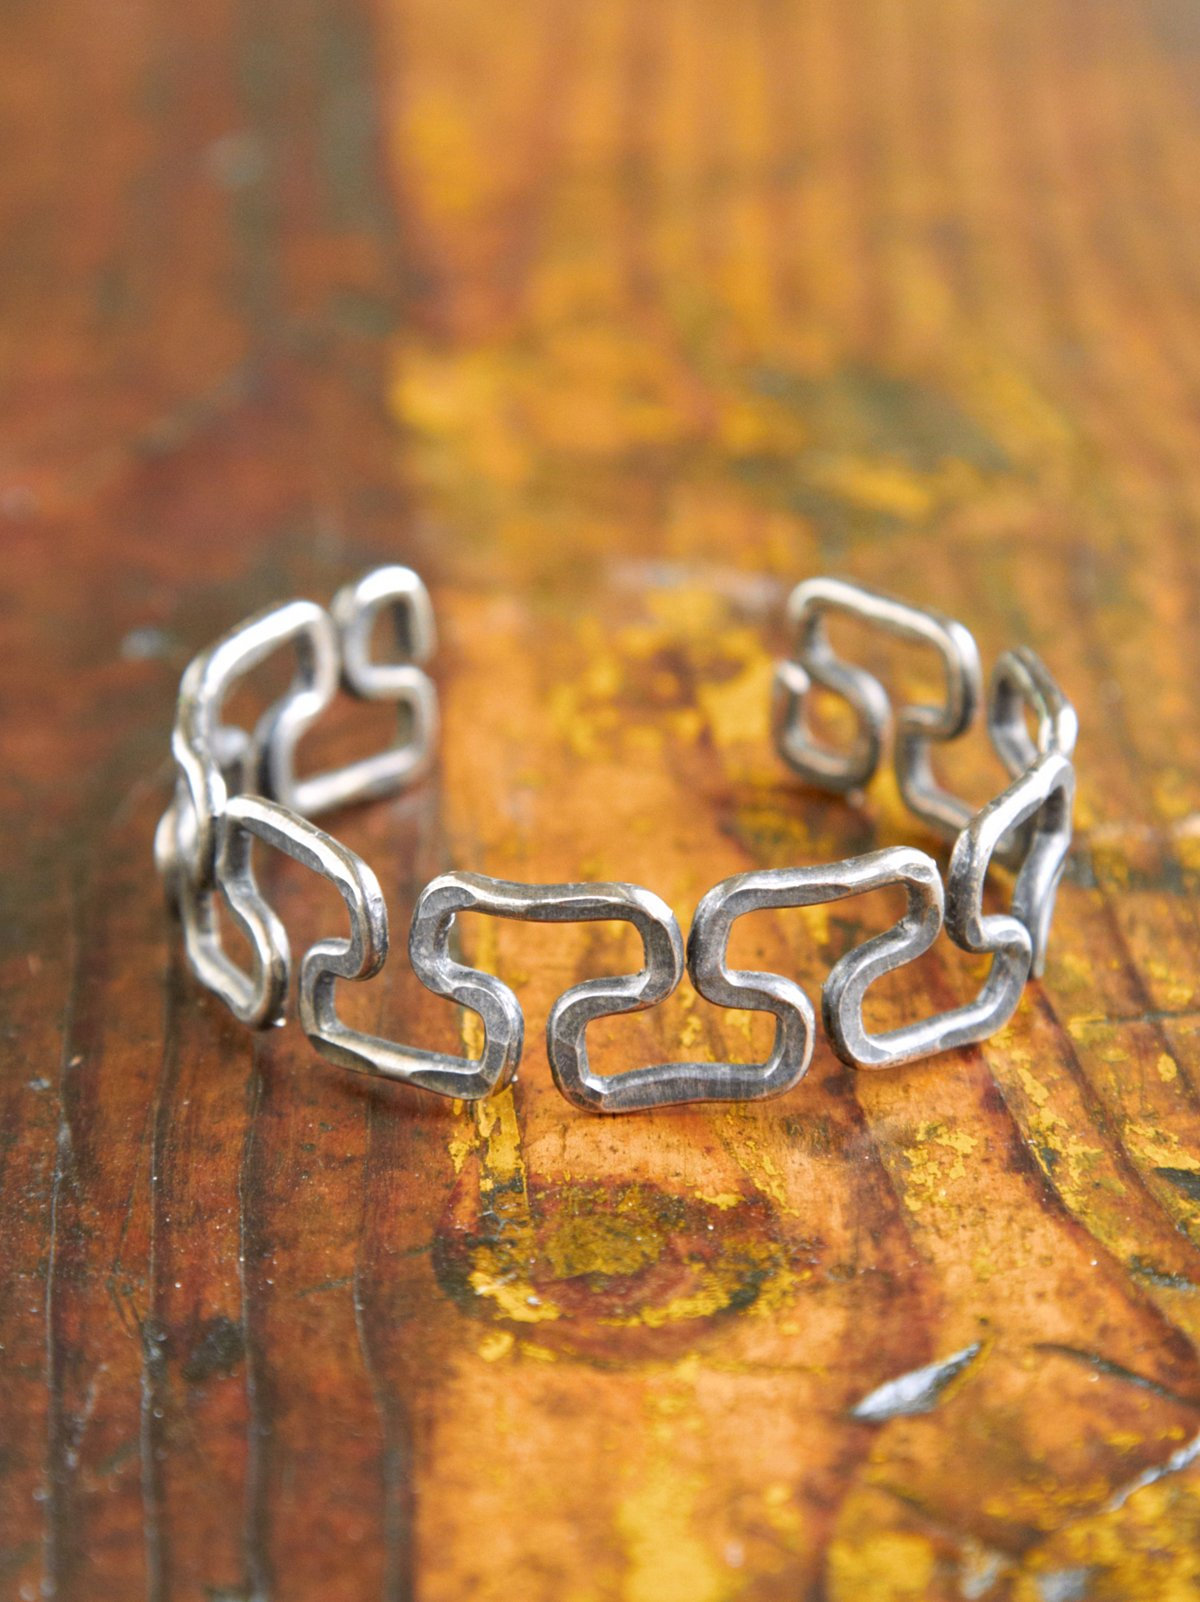 Vintage Pounded Metal Cuff